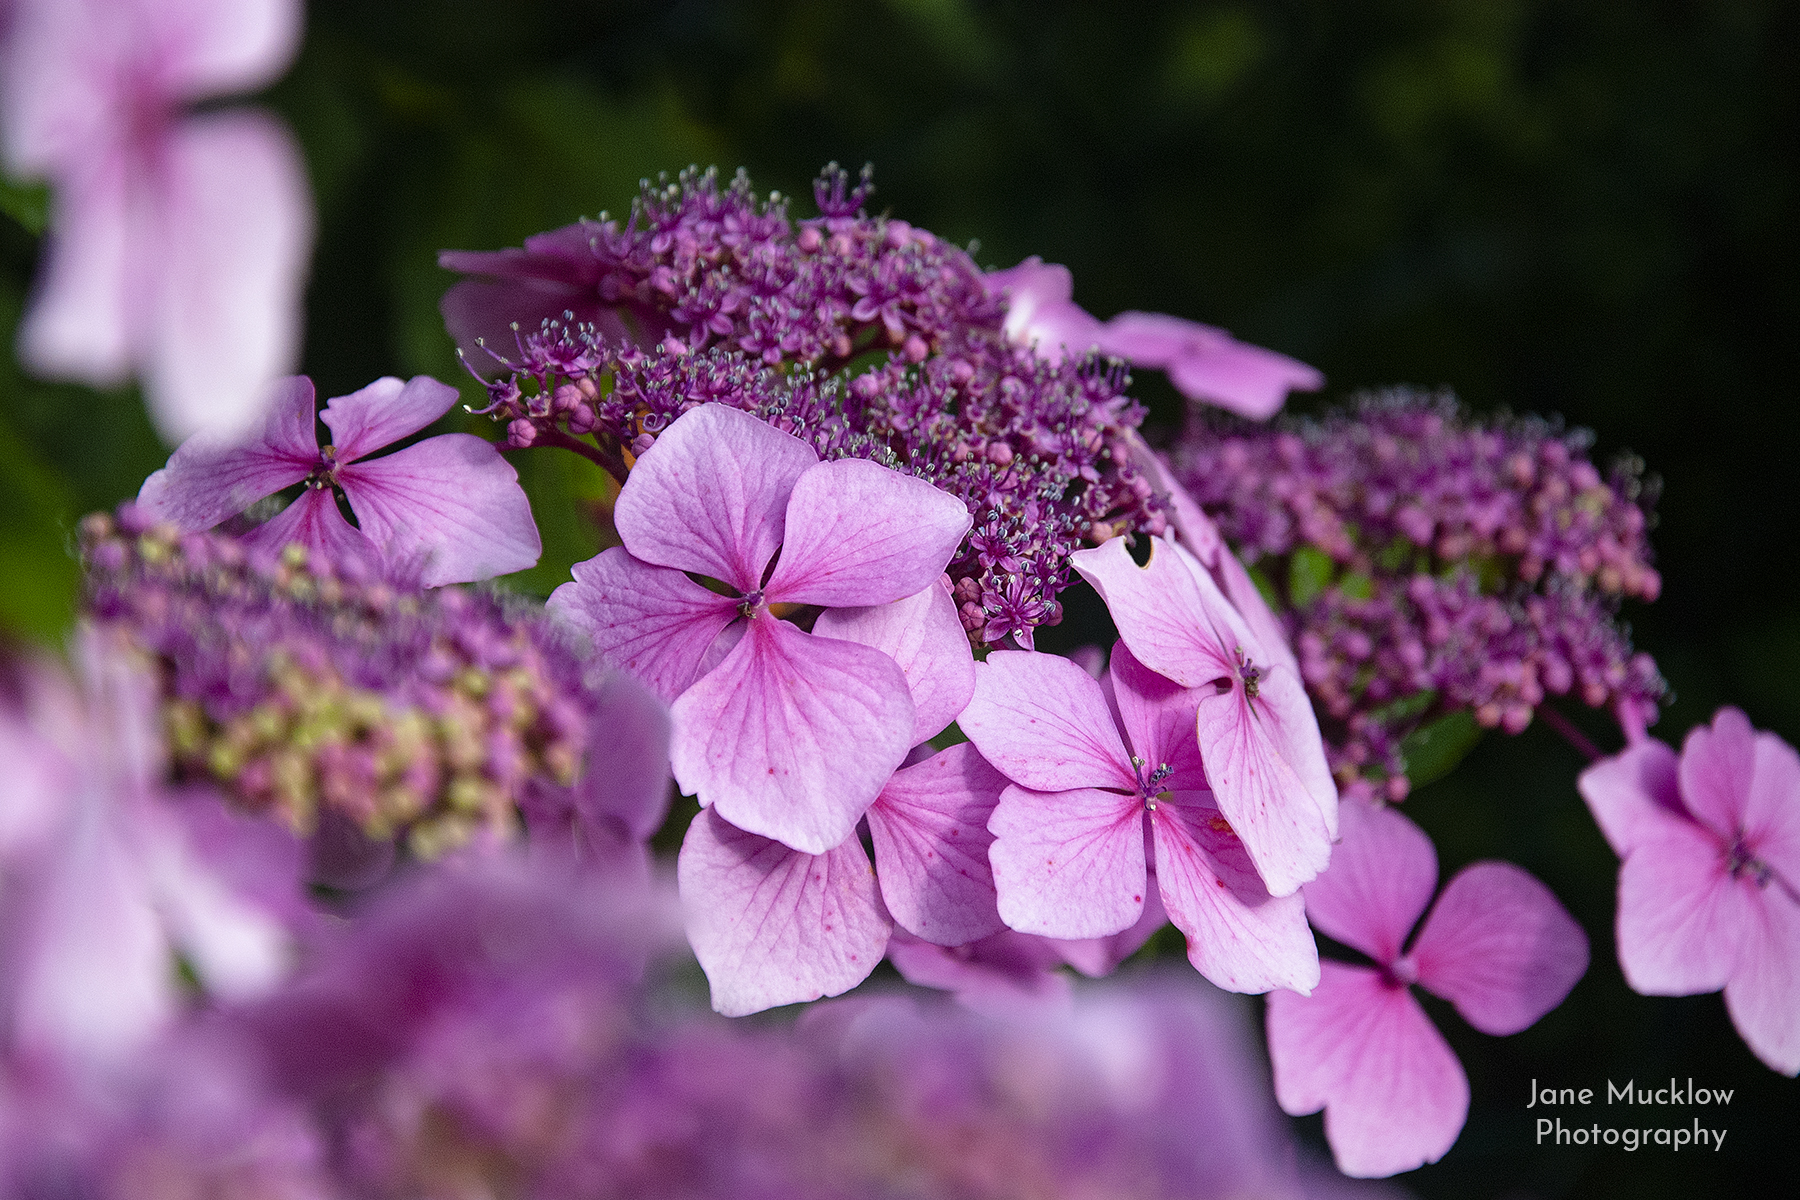 Photo of a pink hydrangea, by Jane Mucklow